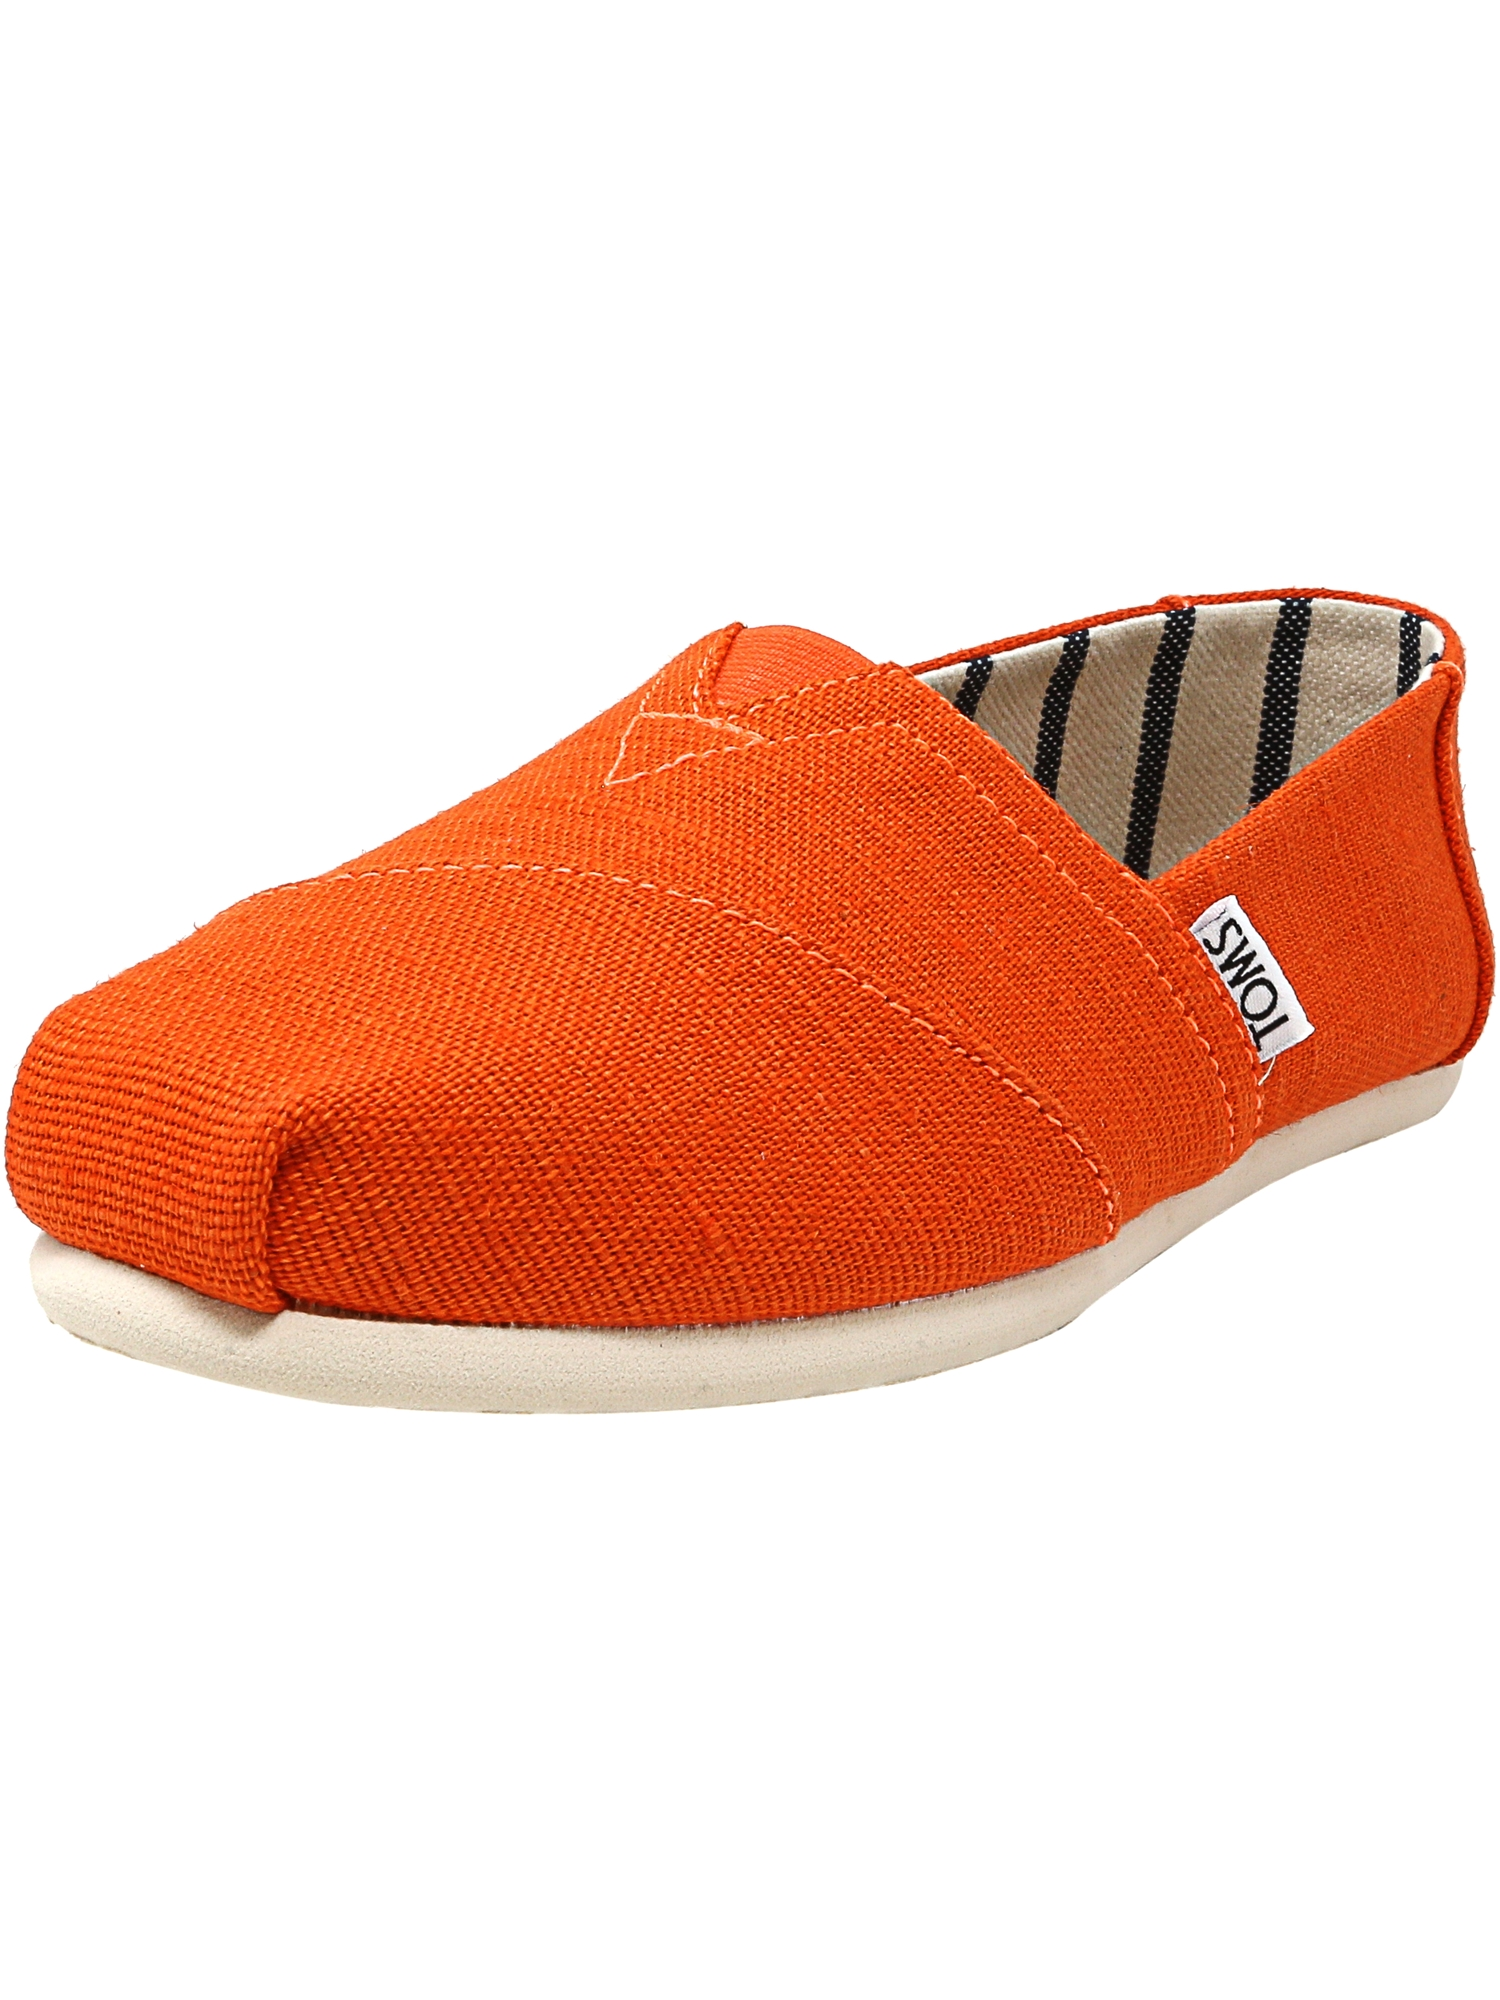 Toms Women's Classic Heritage Canvas Tangerine Ankle-High Slip-On Shoes - 7.5M